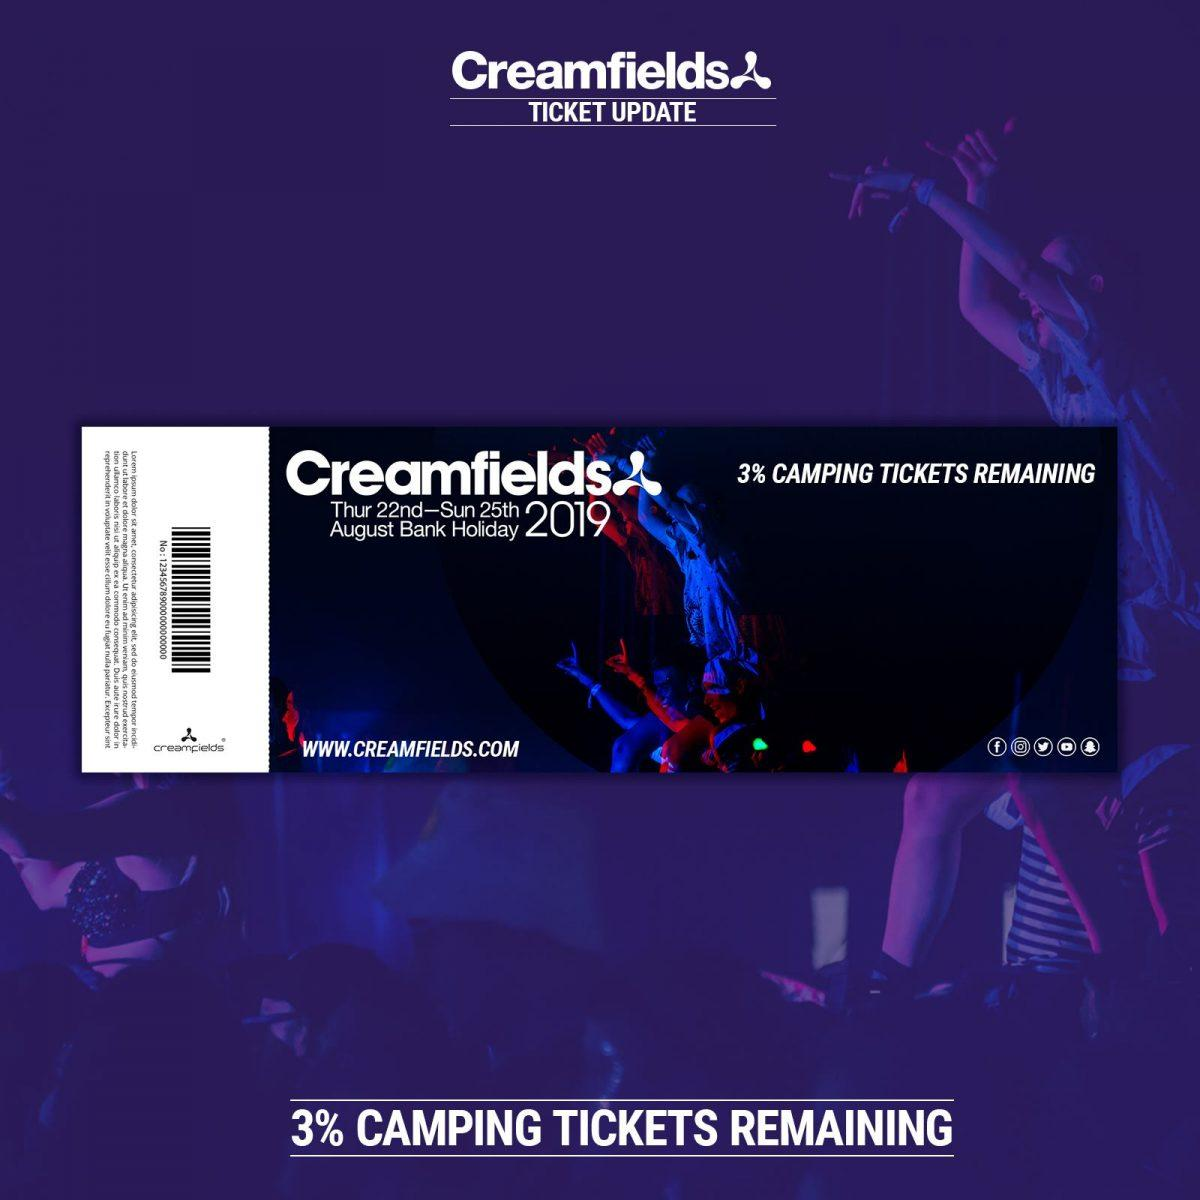 Only 3% of all camping tickets remaining....